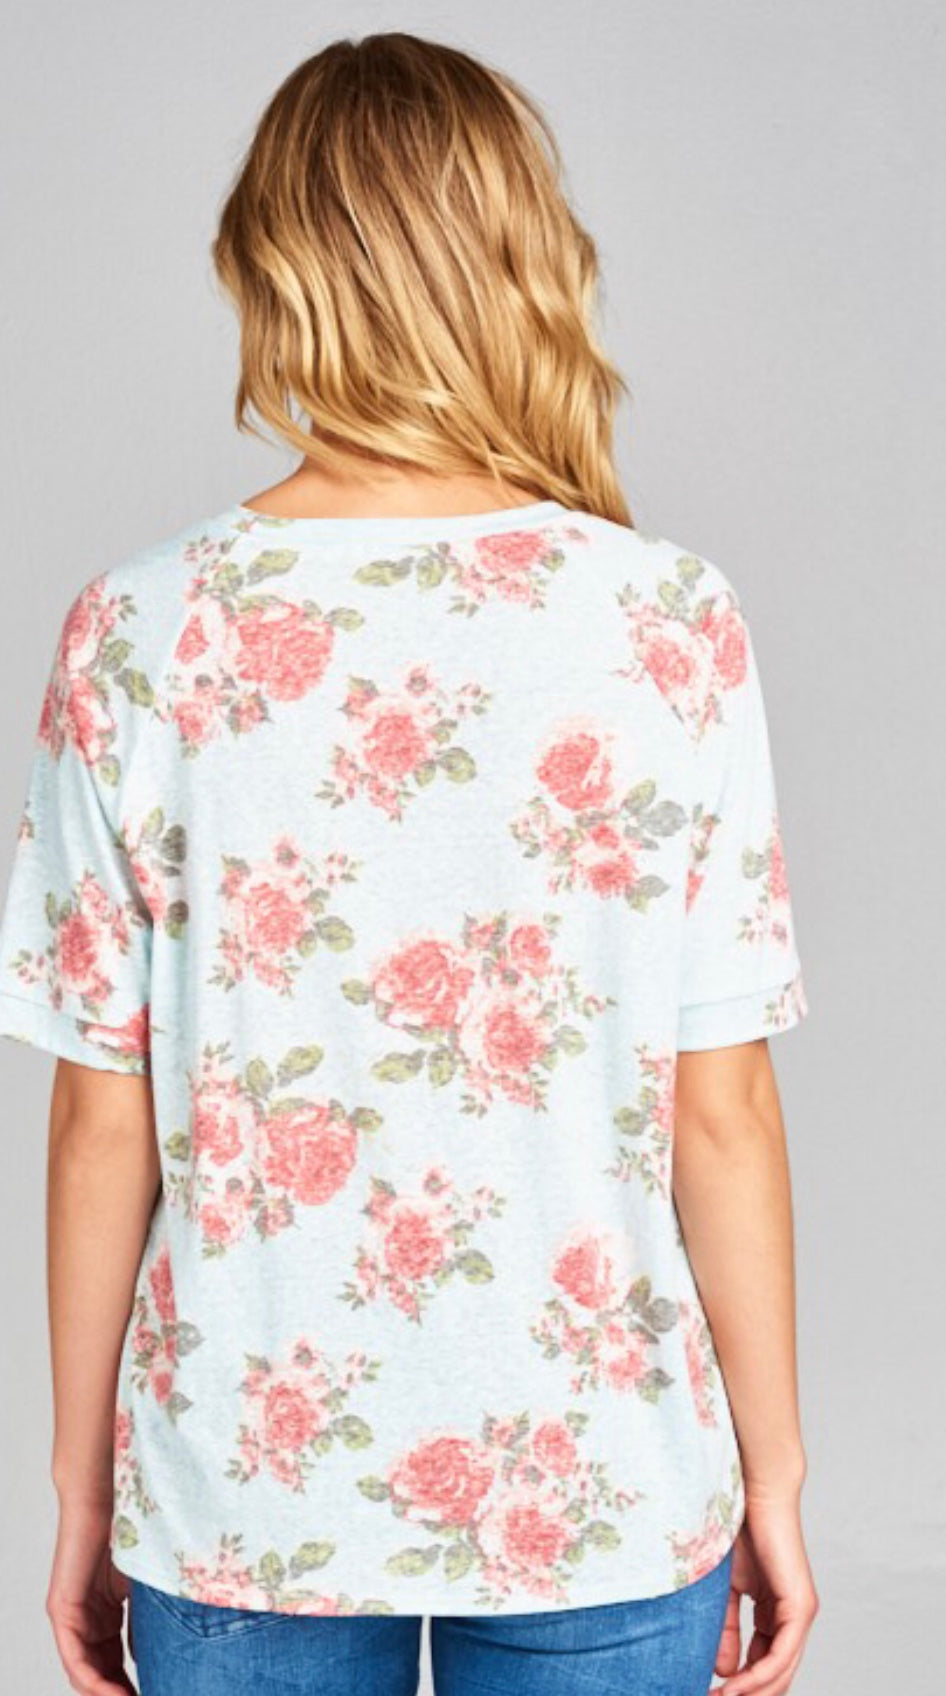 Falling for You Floral Tunic Top - Mint